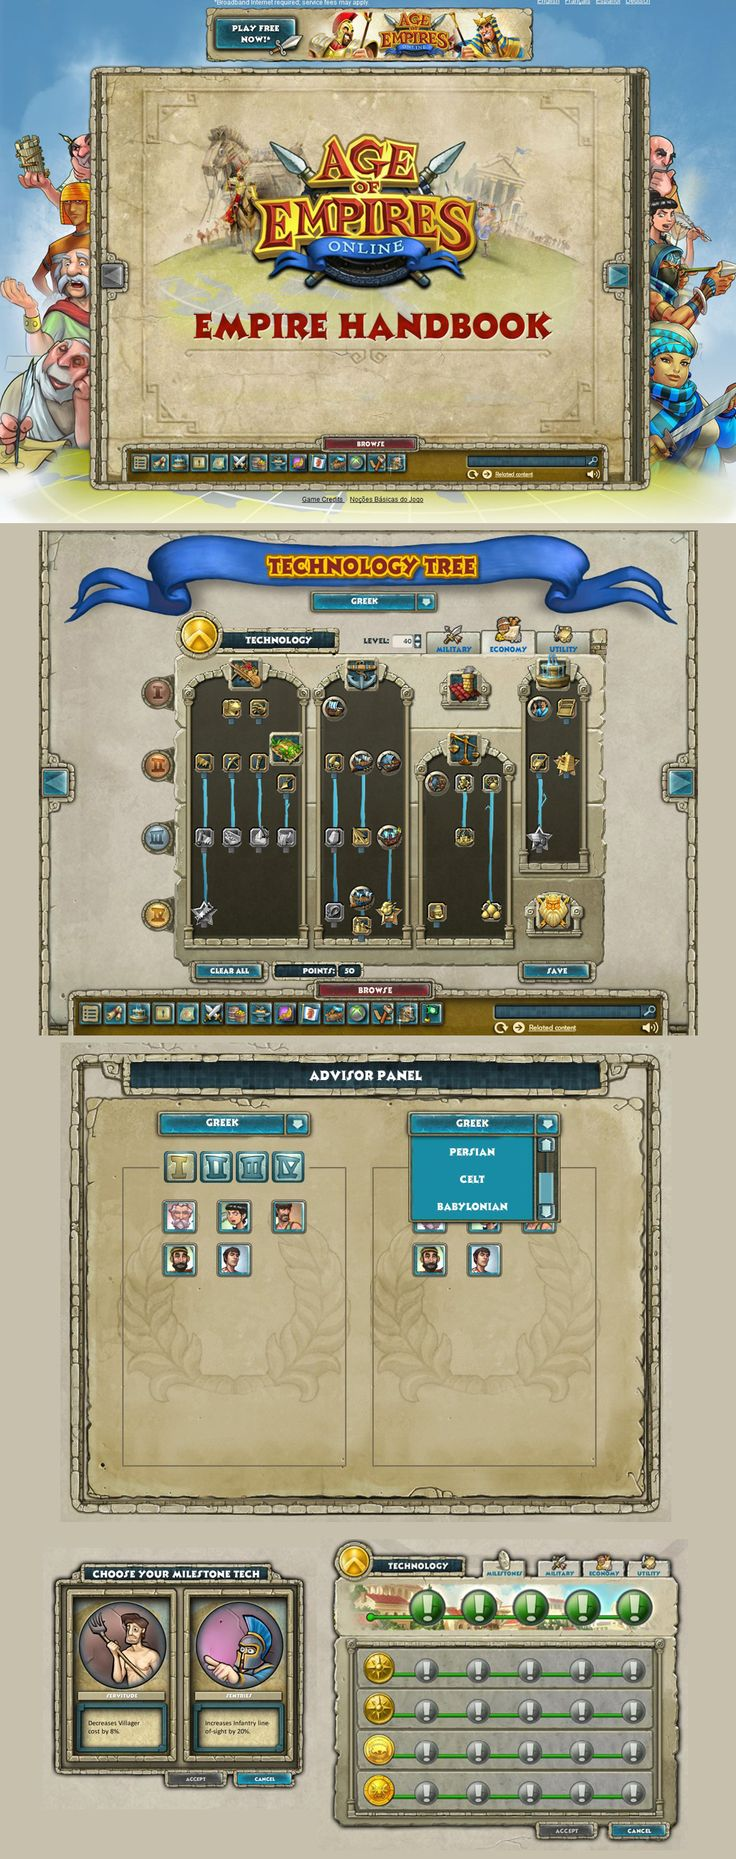 age of empires interface of empire handbook